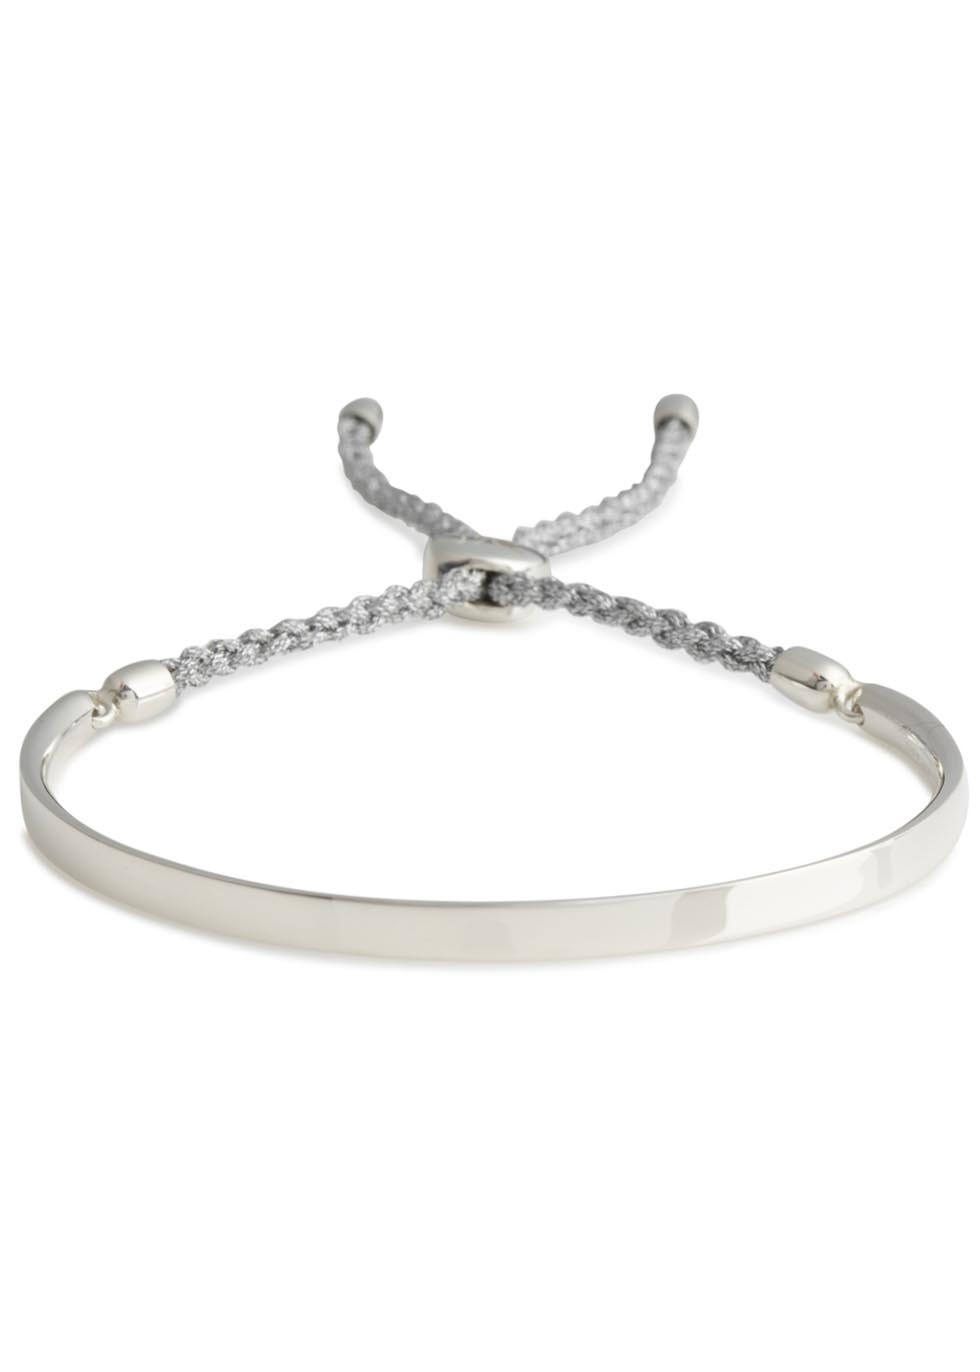 Fiji Sterling Silver Bracelet - predominant colour: silver; occasions: casual, creative work; style: friendship/tie; size: standard; material: chain/metal; finish: metallic; season: s/s 2014